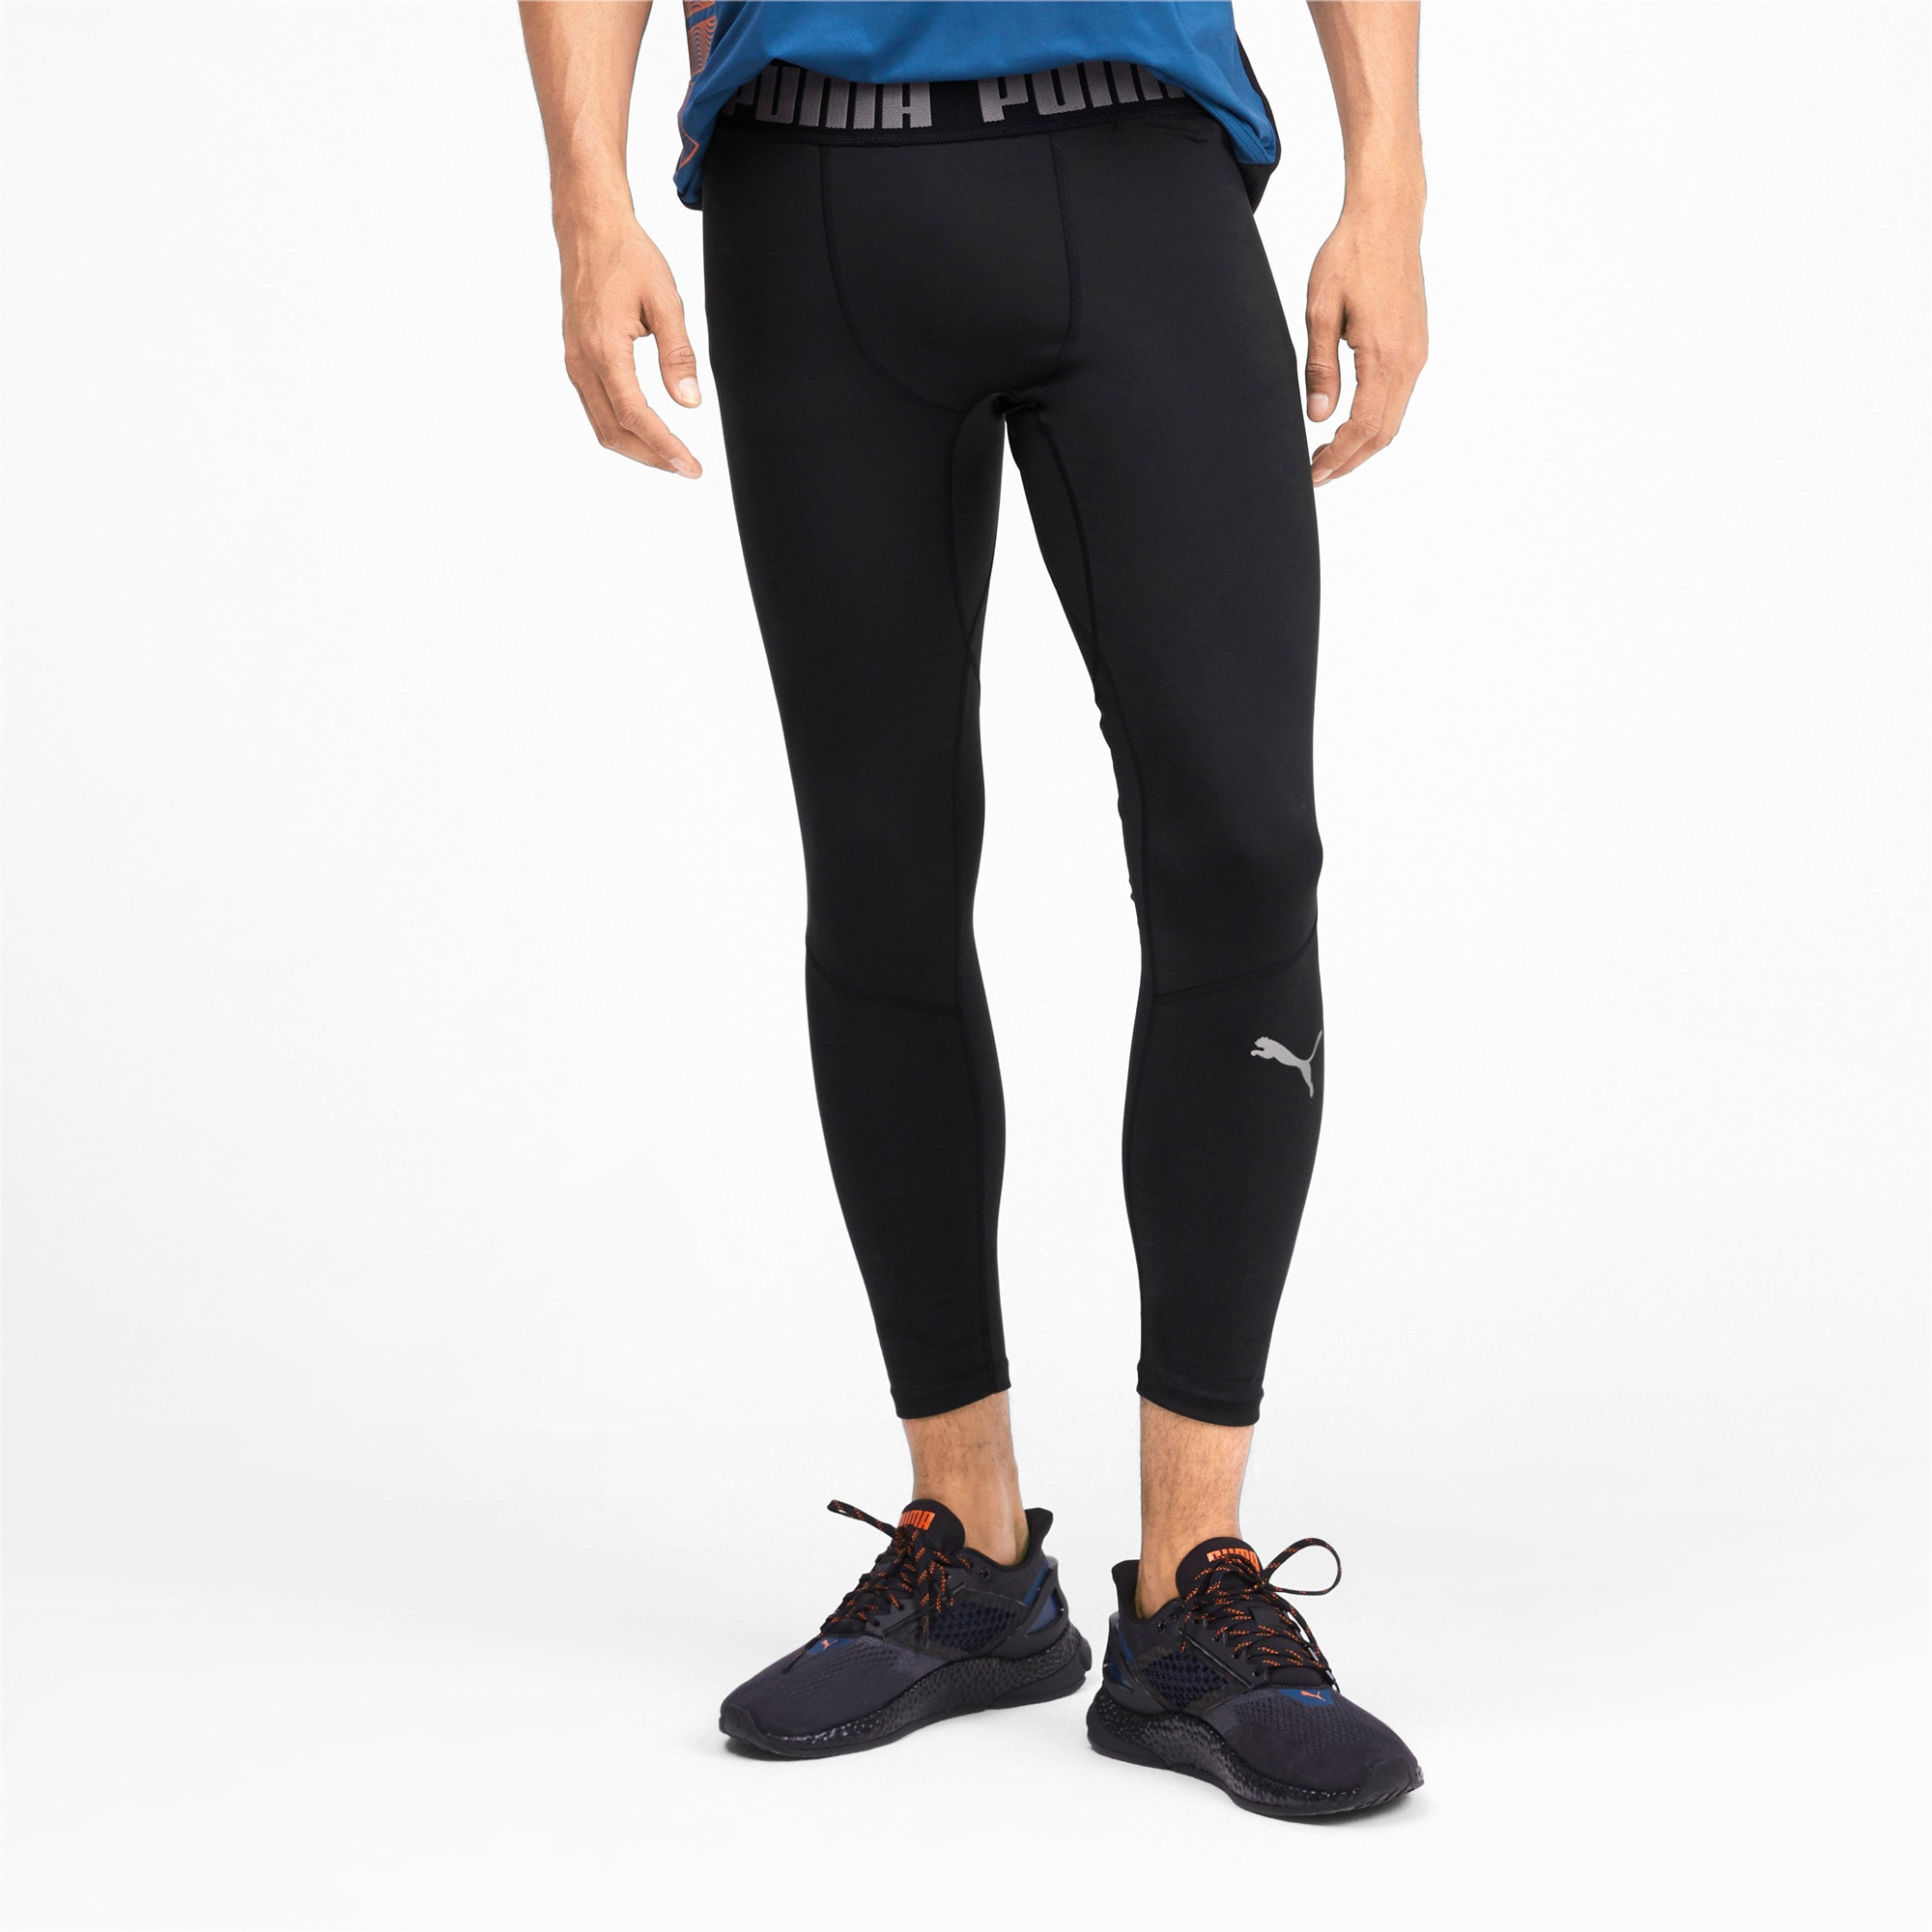 Thumbnail 1 of BND 7/8 Men's Training Tights, Puma Black, medium